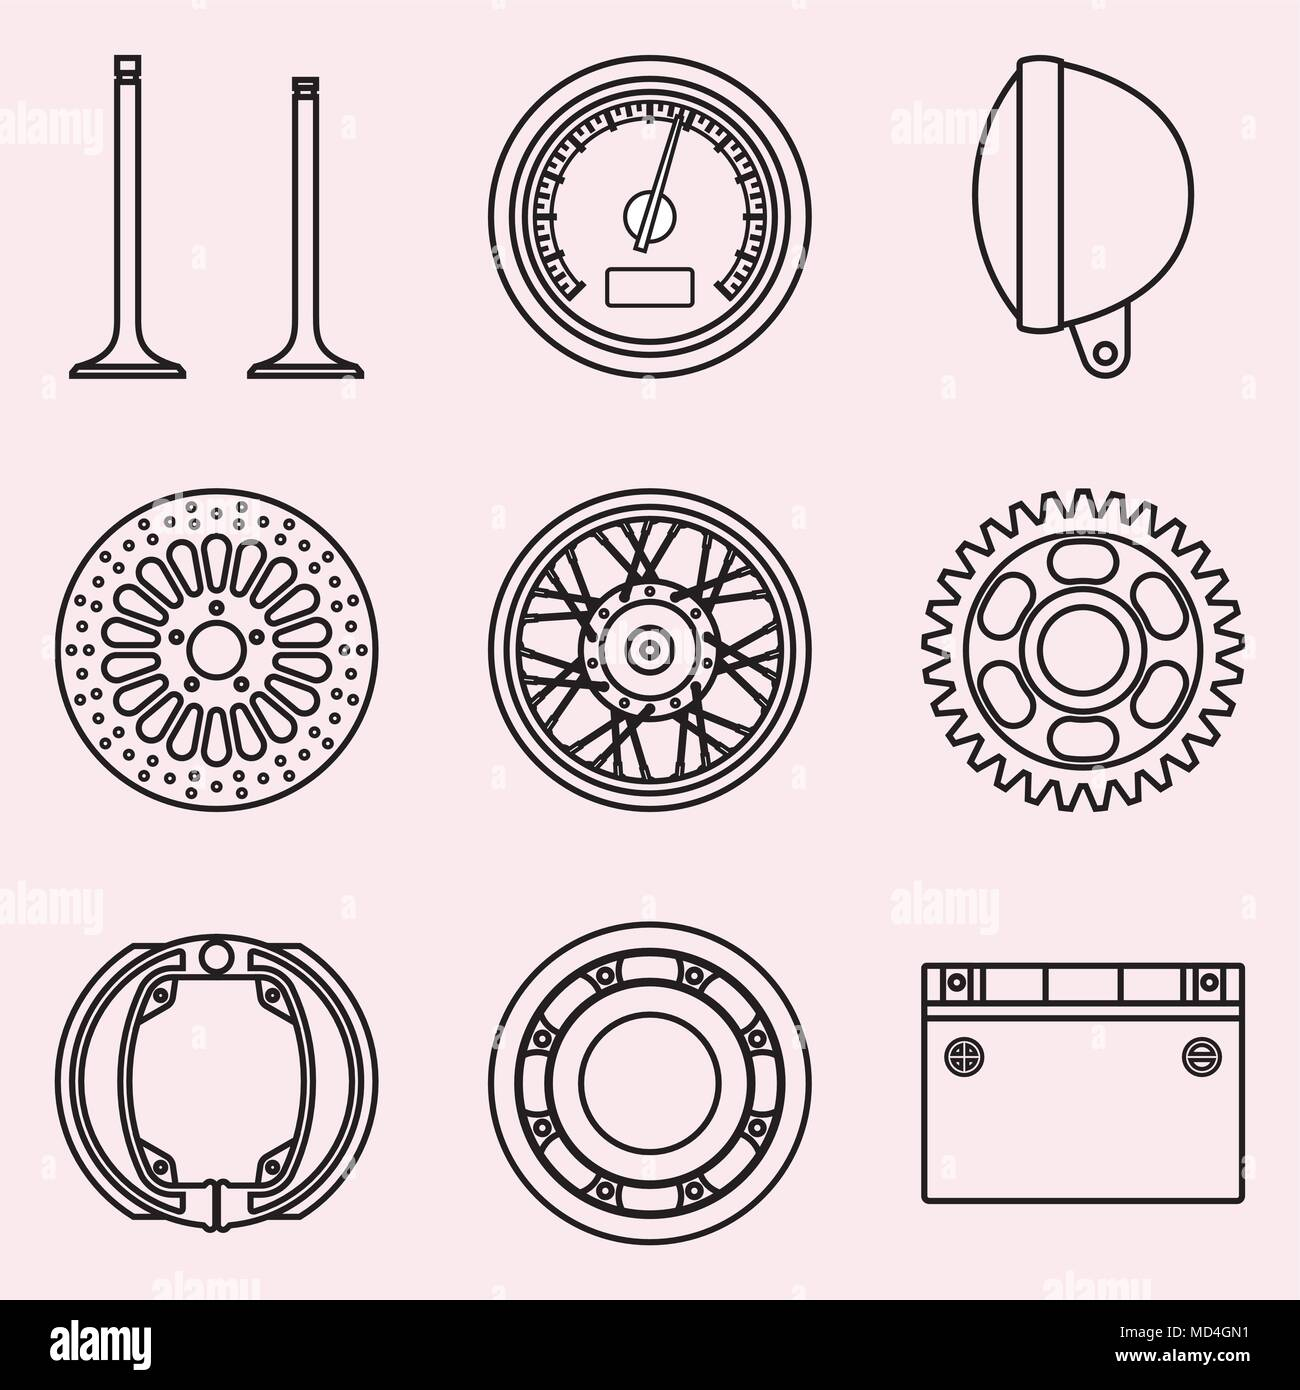 Motorcycle Parts And Accessories Vector Thin Line Stock Vector Art